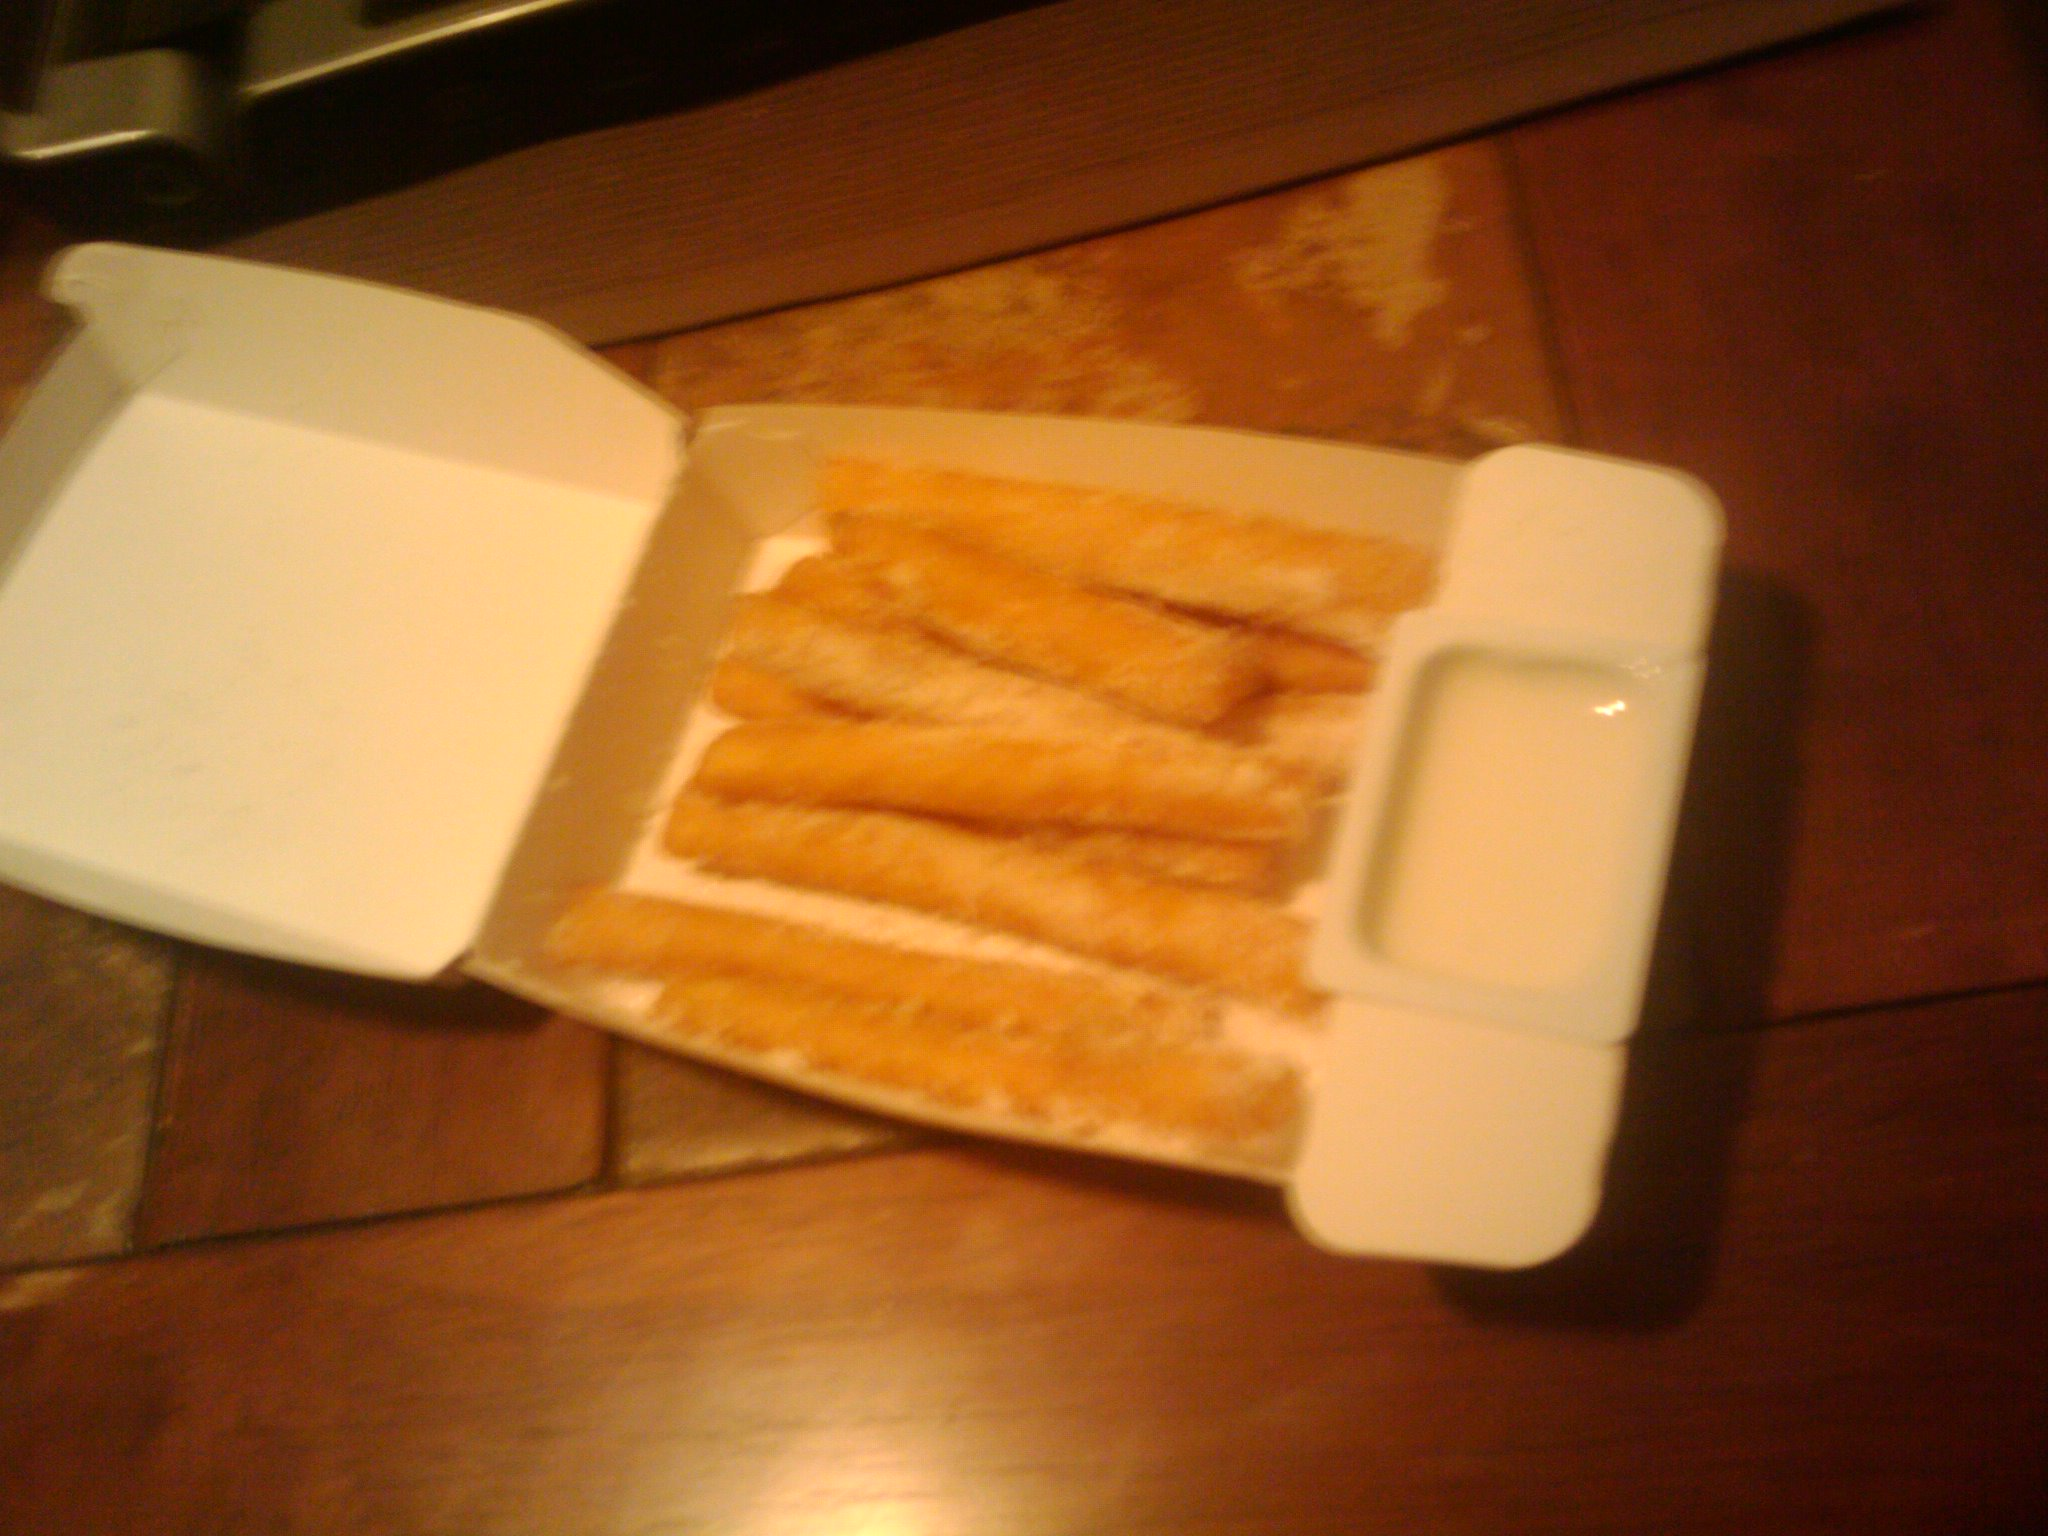 pasadena, tx :: funnel cake sticks w/ icing from burgerking, yummmm